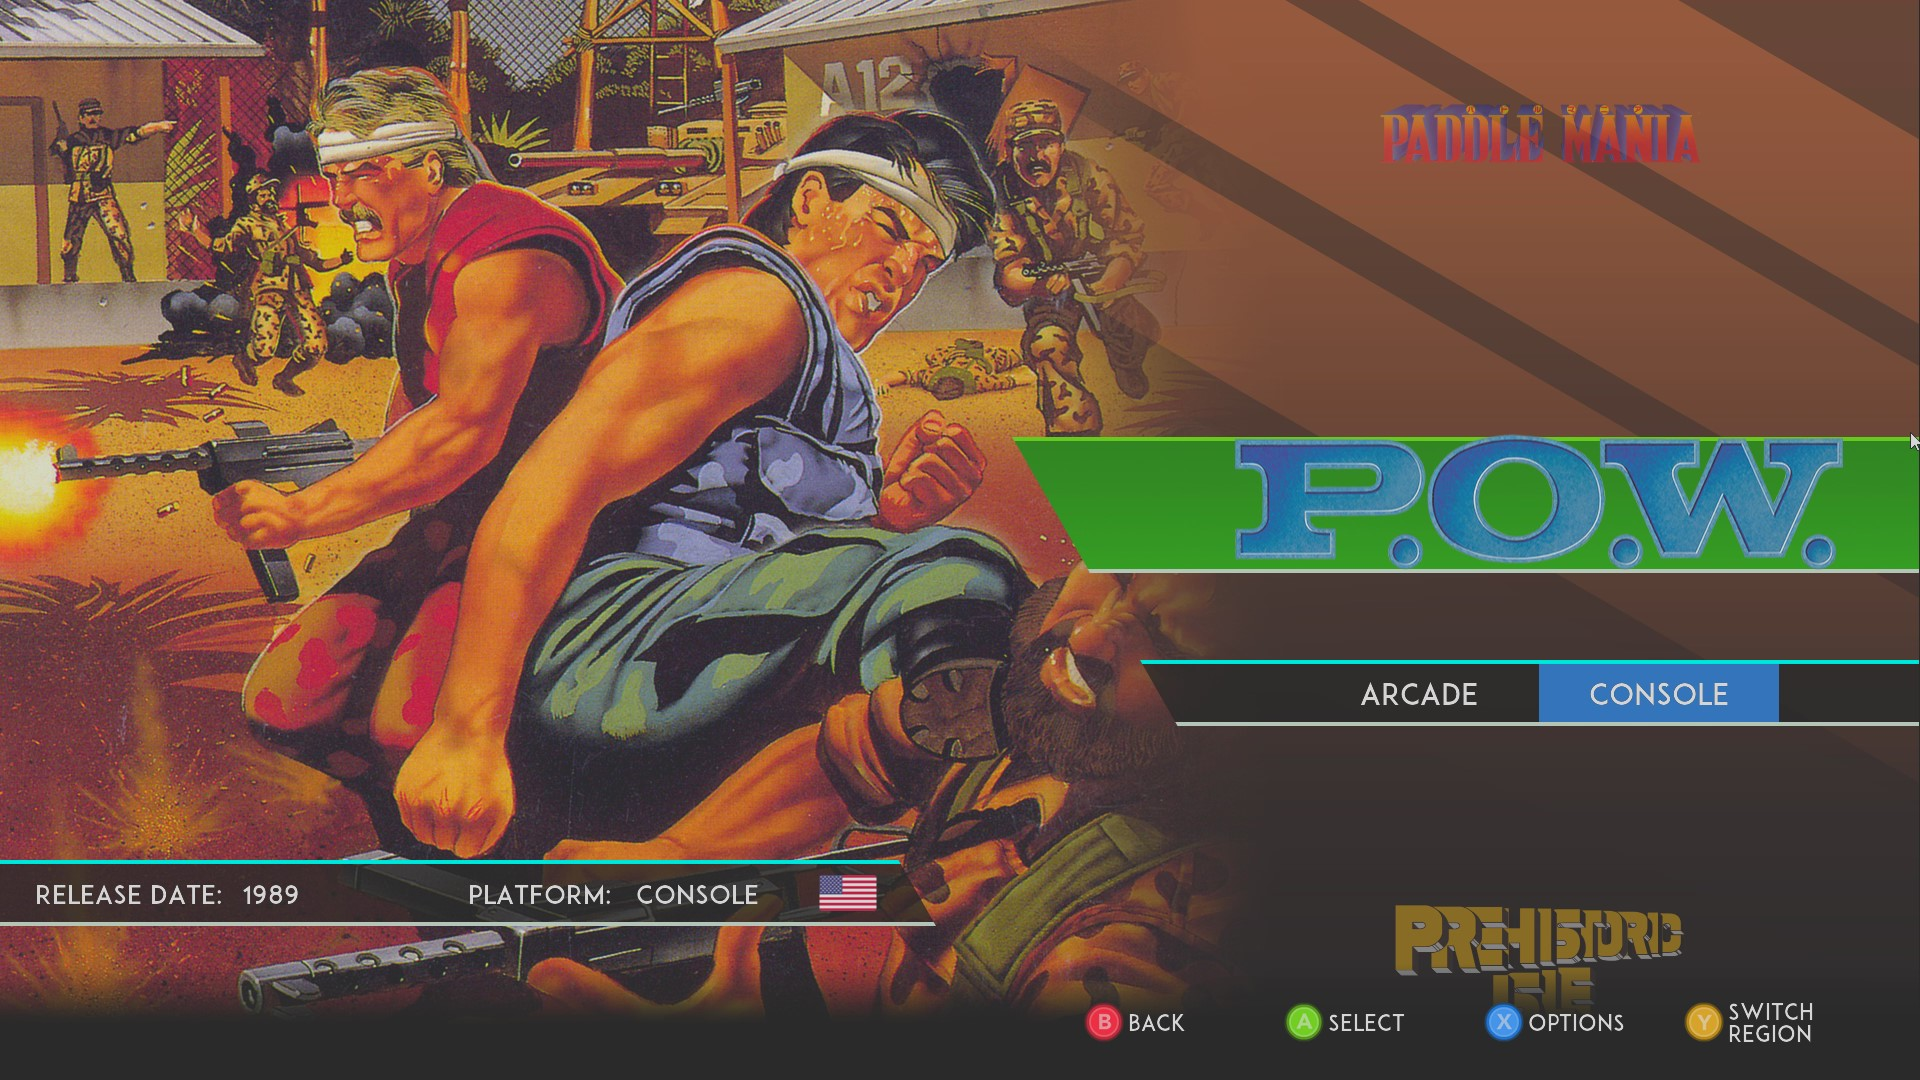 AkinNahtanoj: SNK 40th Anniversary Collection: P.O.W. Prisoners of War [Console] (PC) 5,800 points on 2020-08-24 06:16:48